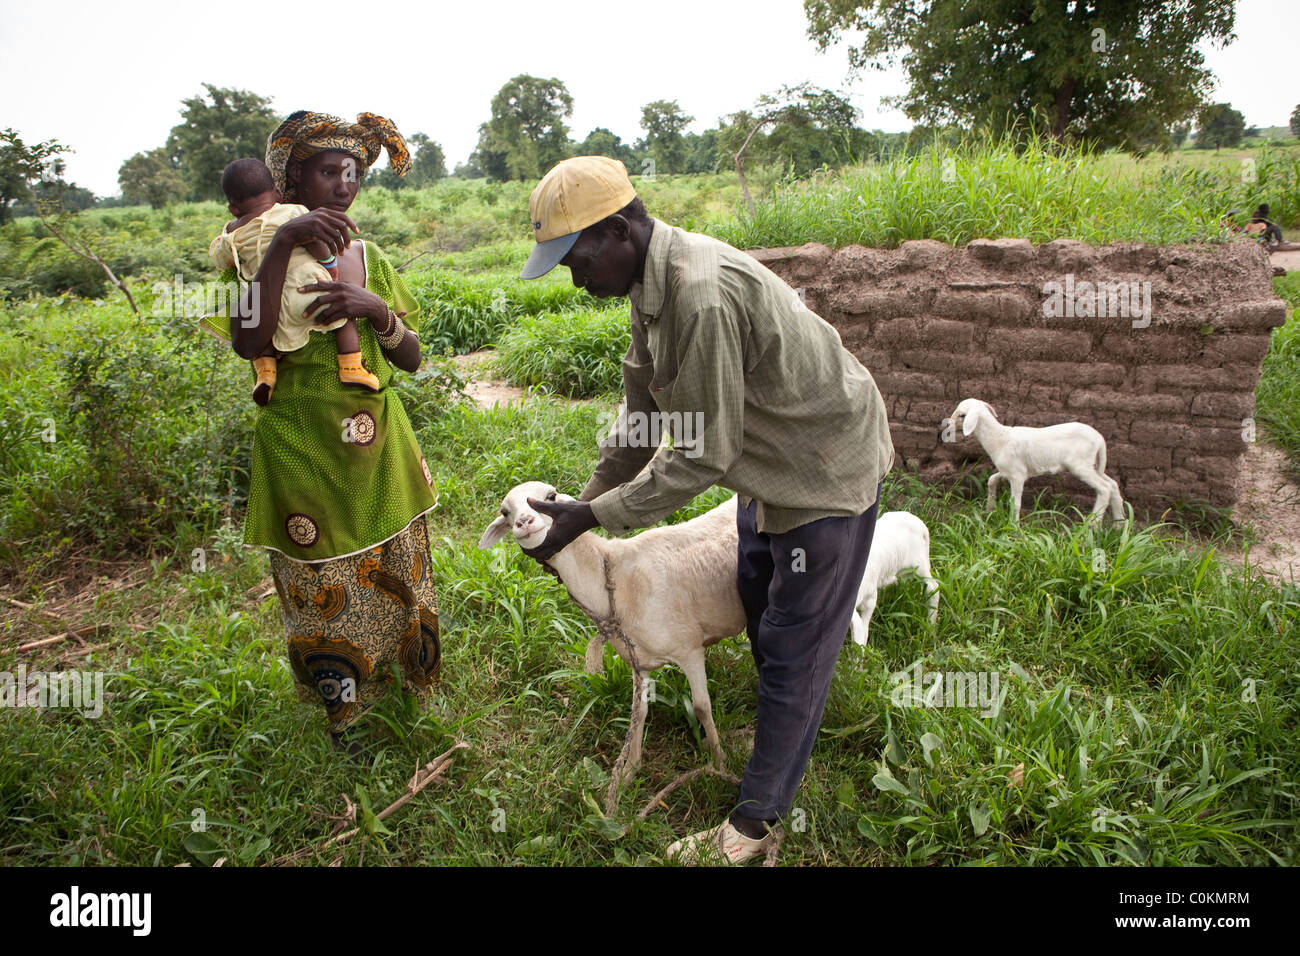 A family of farmers tend to their sheep in Safo, Mali, West Africa. - Stock Image